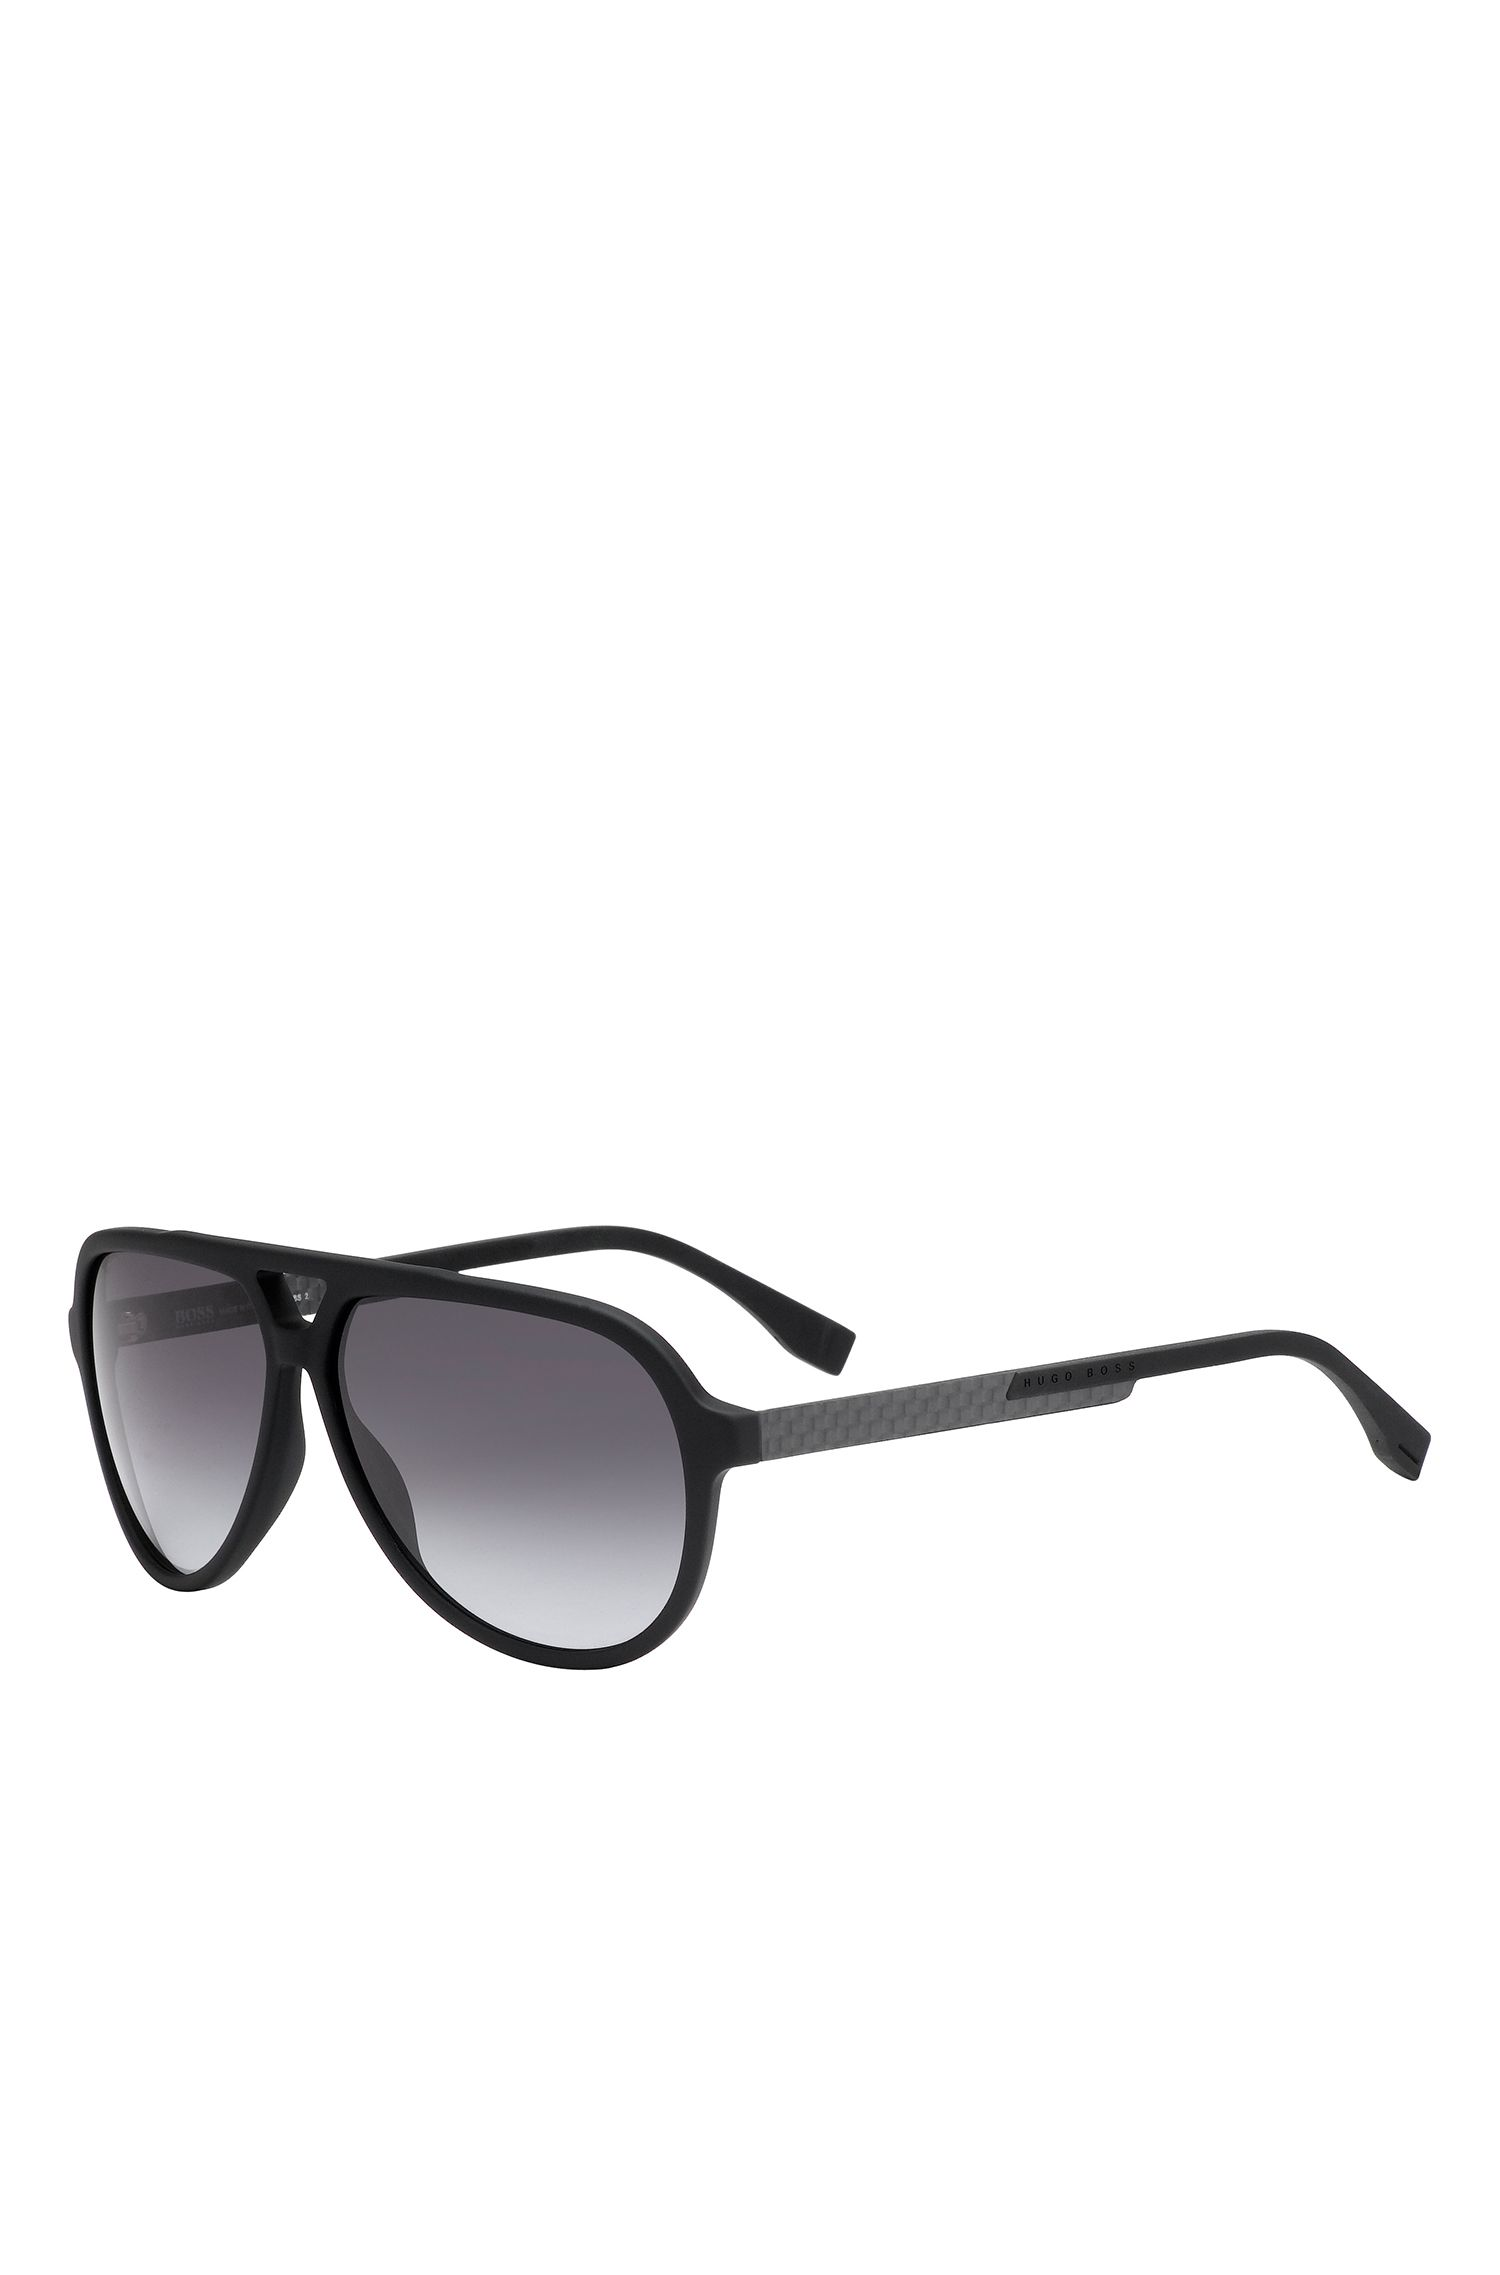 'BOSS 0731S' | Gray Lens Carbon Fiber Aviator Sunglasses